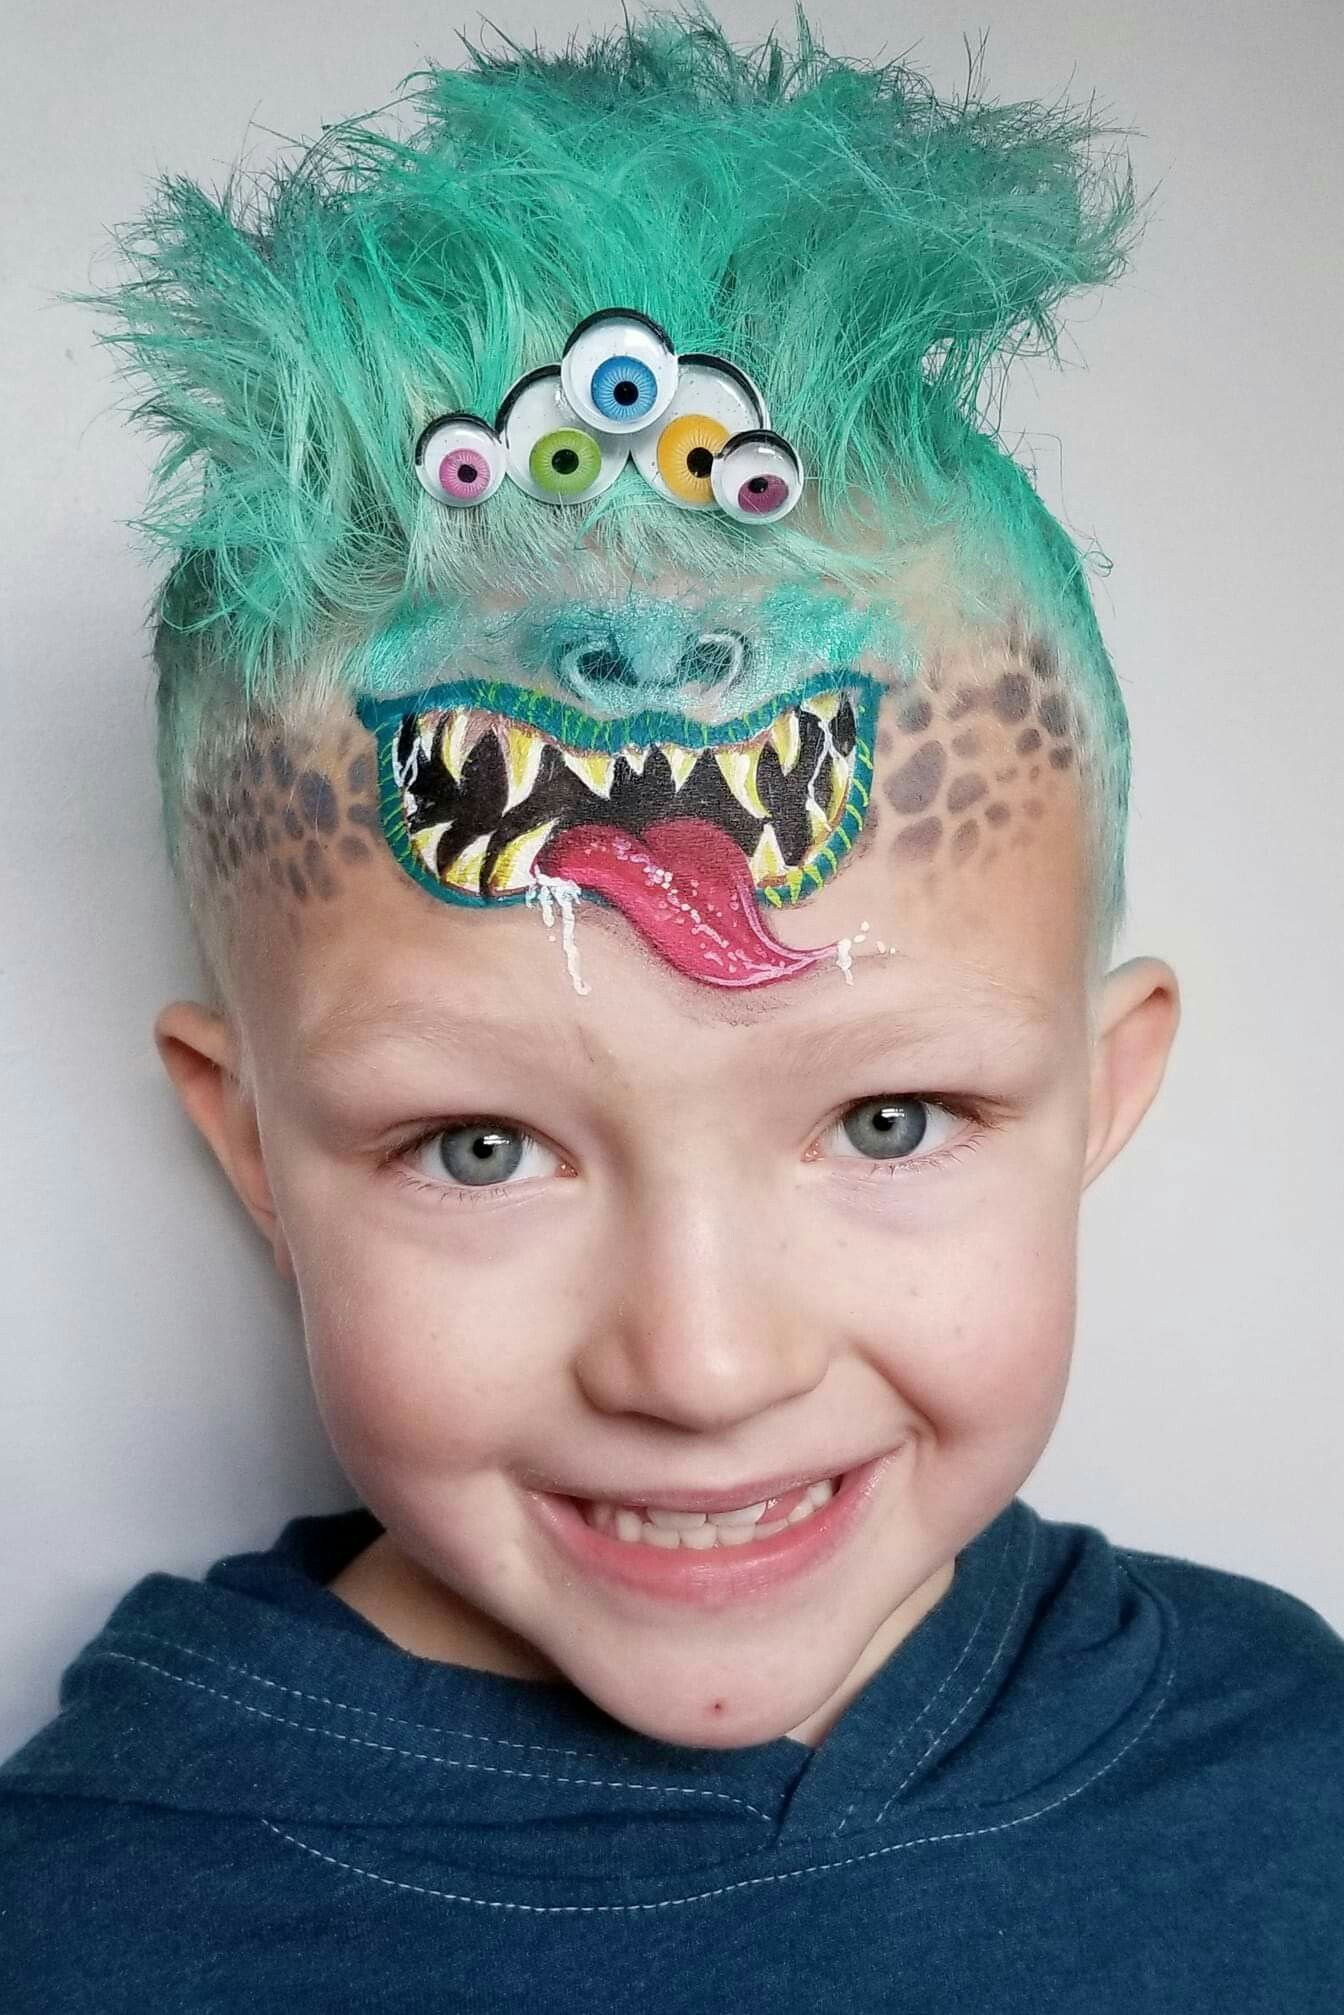 Monster Fp Crazy Hair Day Crazyhairday Monster Fp Crazy Hair Day Crazy Hair Crazy Hair Boys Crazy Hair Days